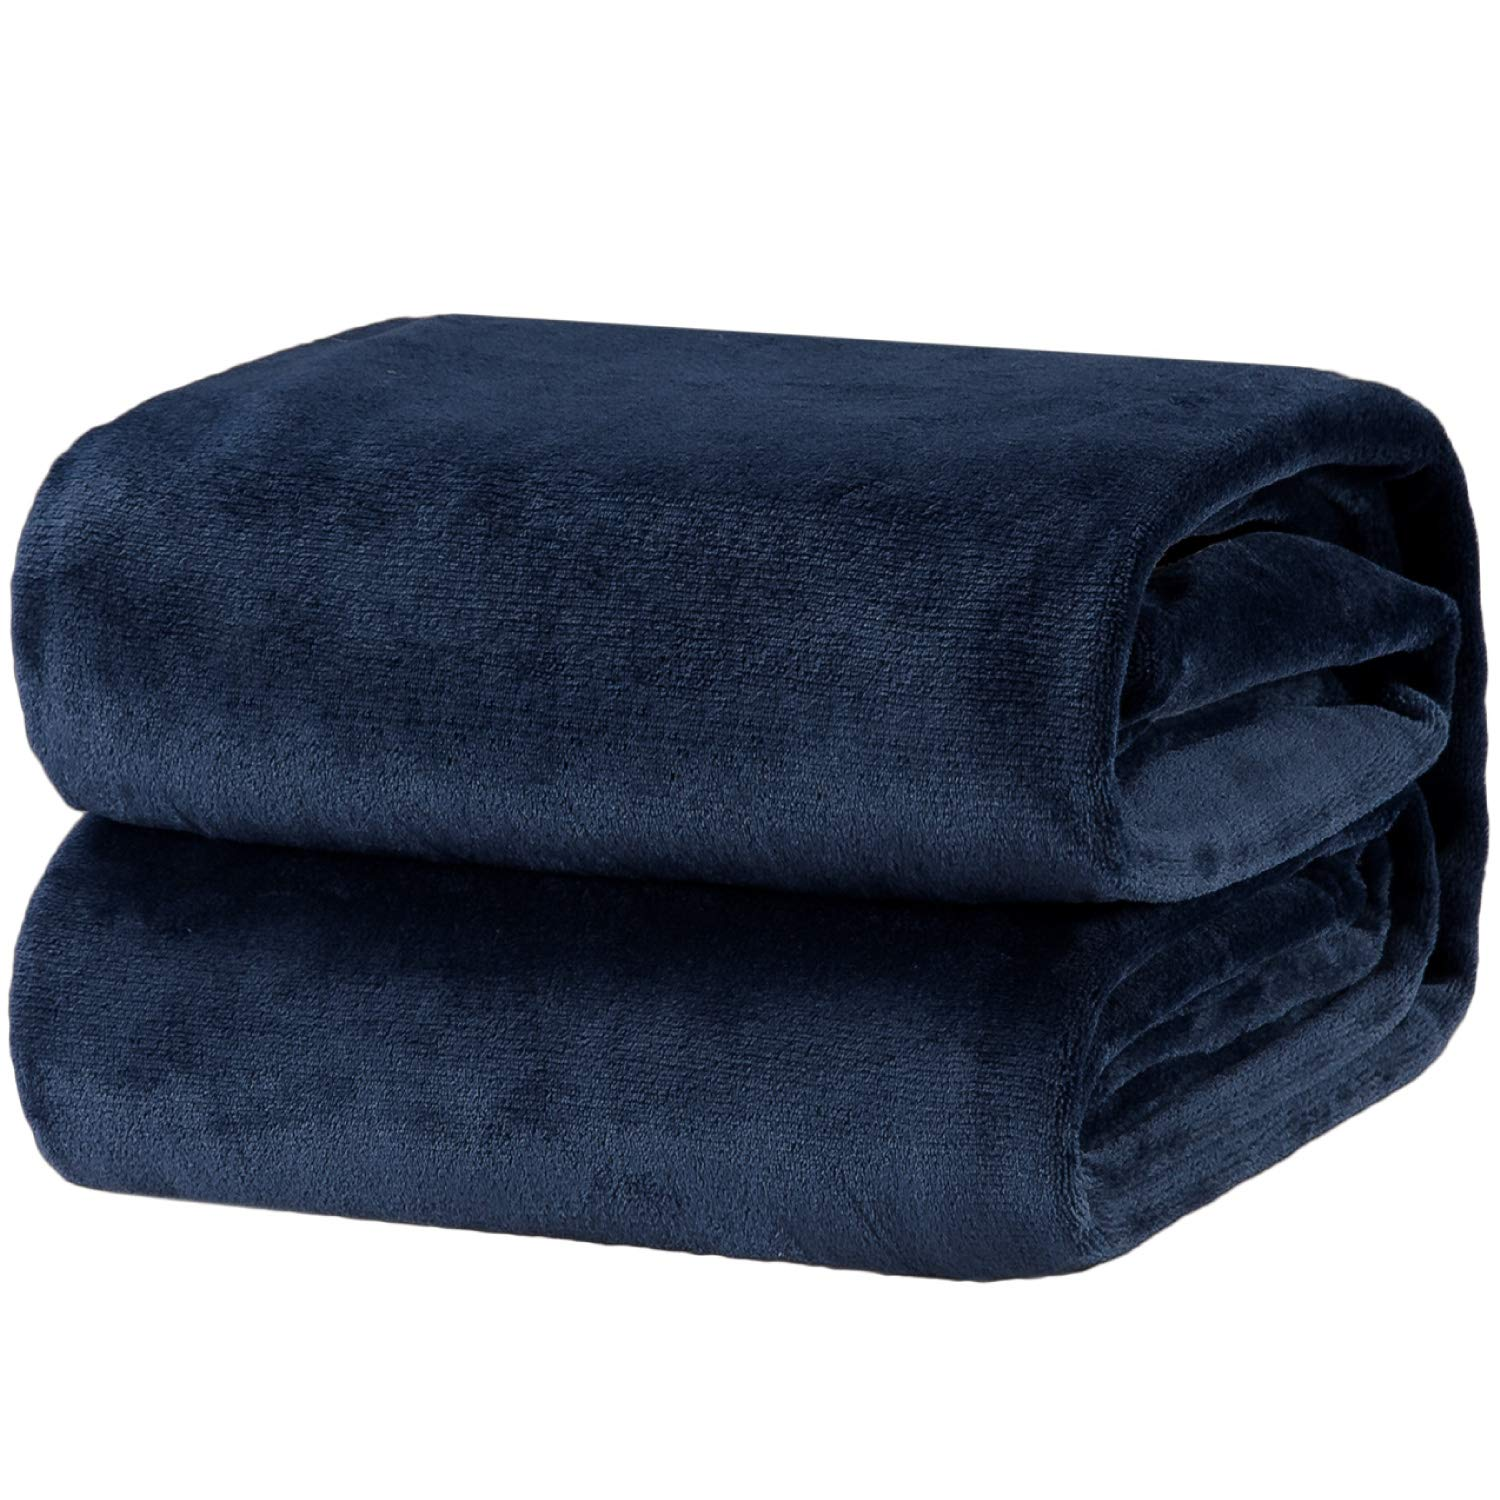 Bedsure Fleece Blanket Throw Size Navy Lightweight Super Soft Cozy Luxury Bed Blanket Microfiber